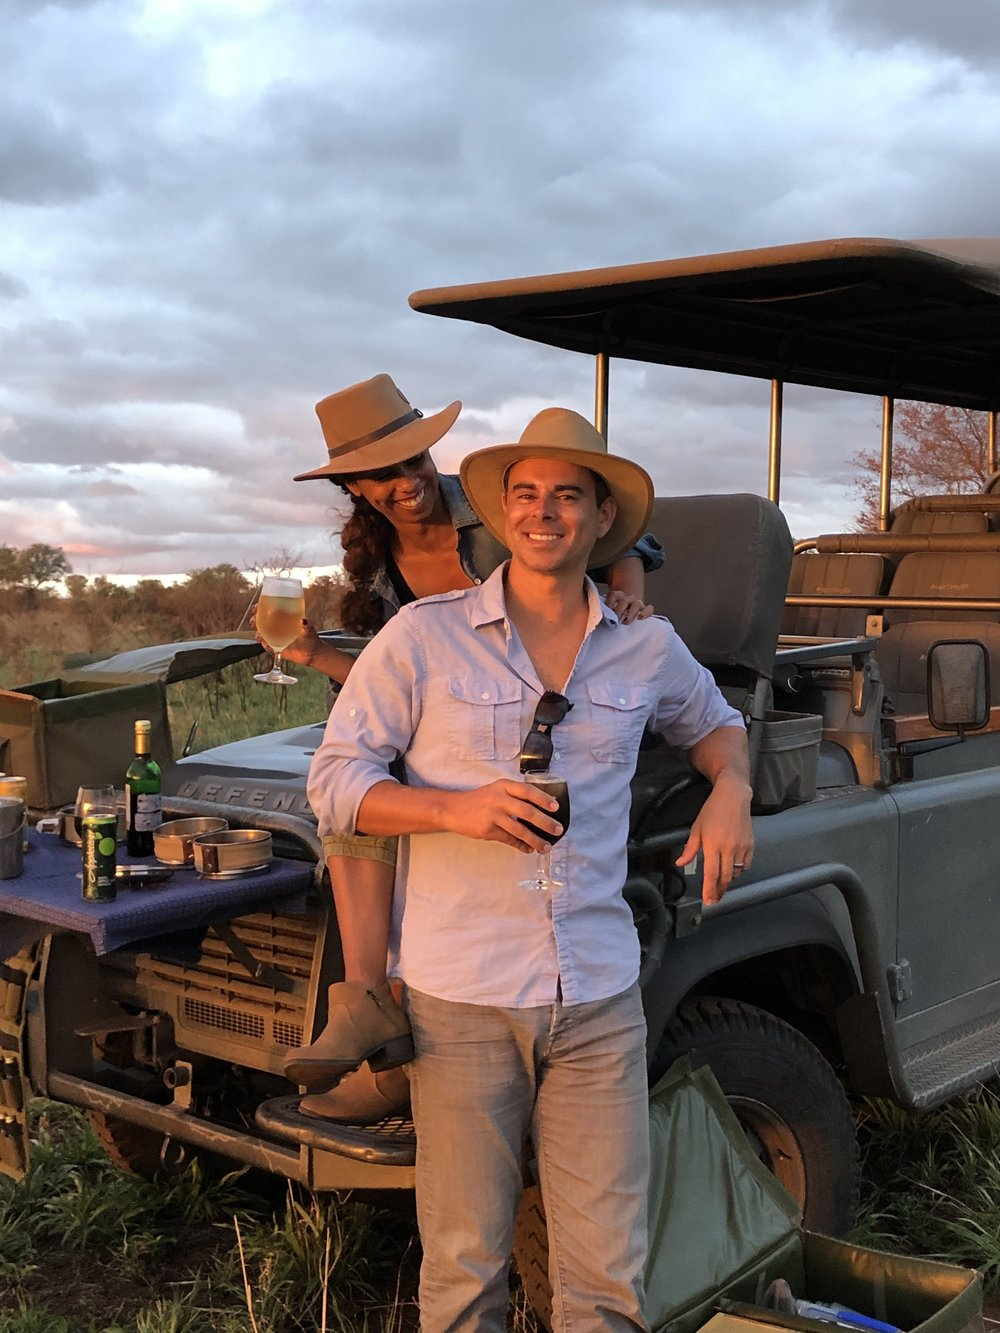 Why choose Singita Lebombo for your safari